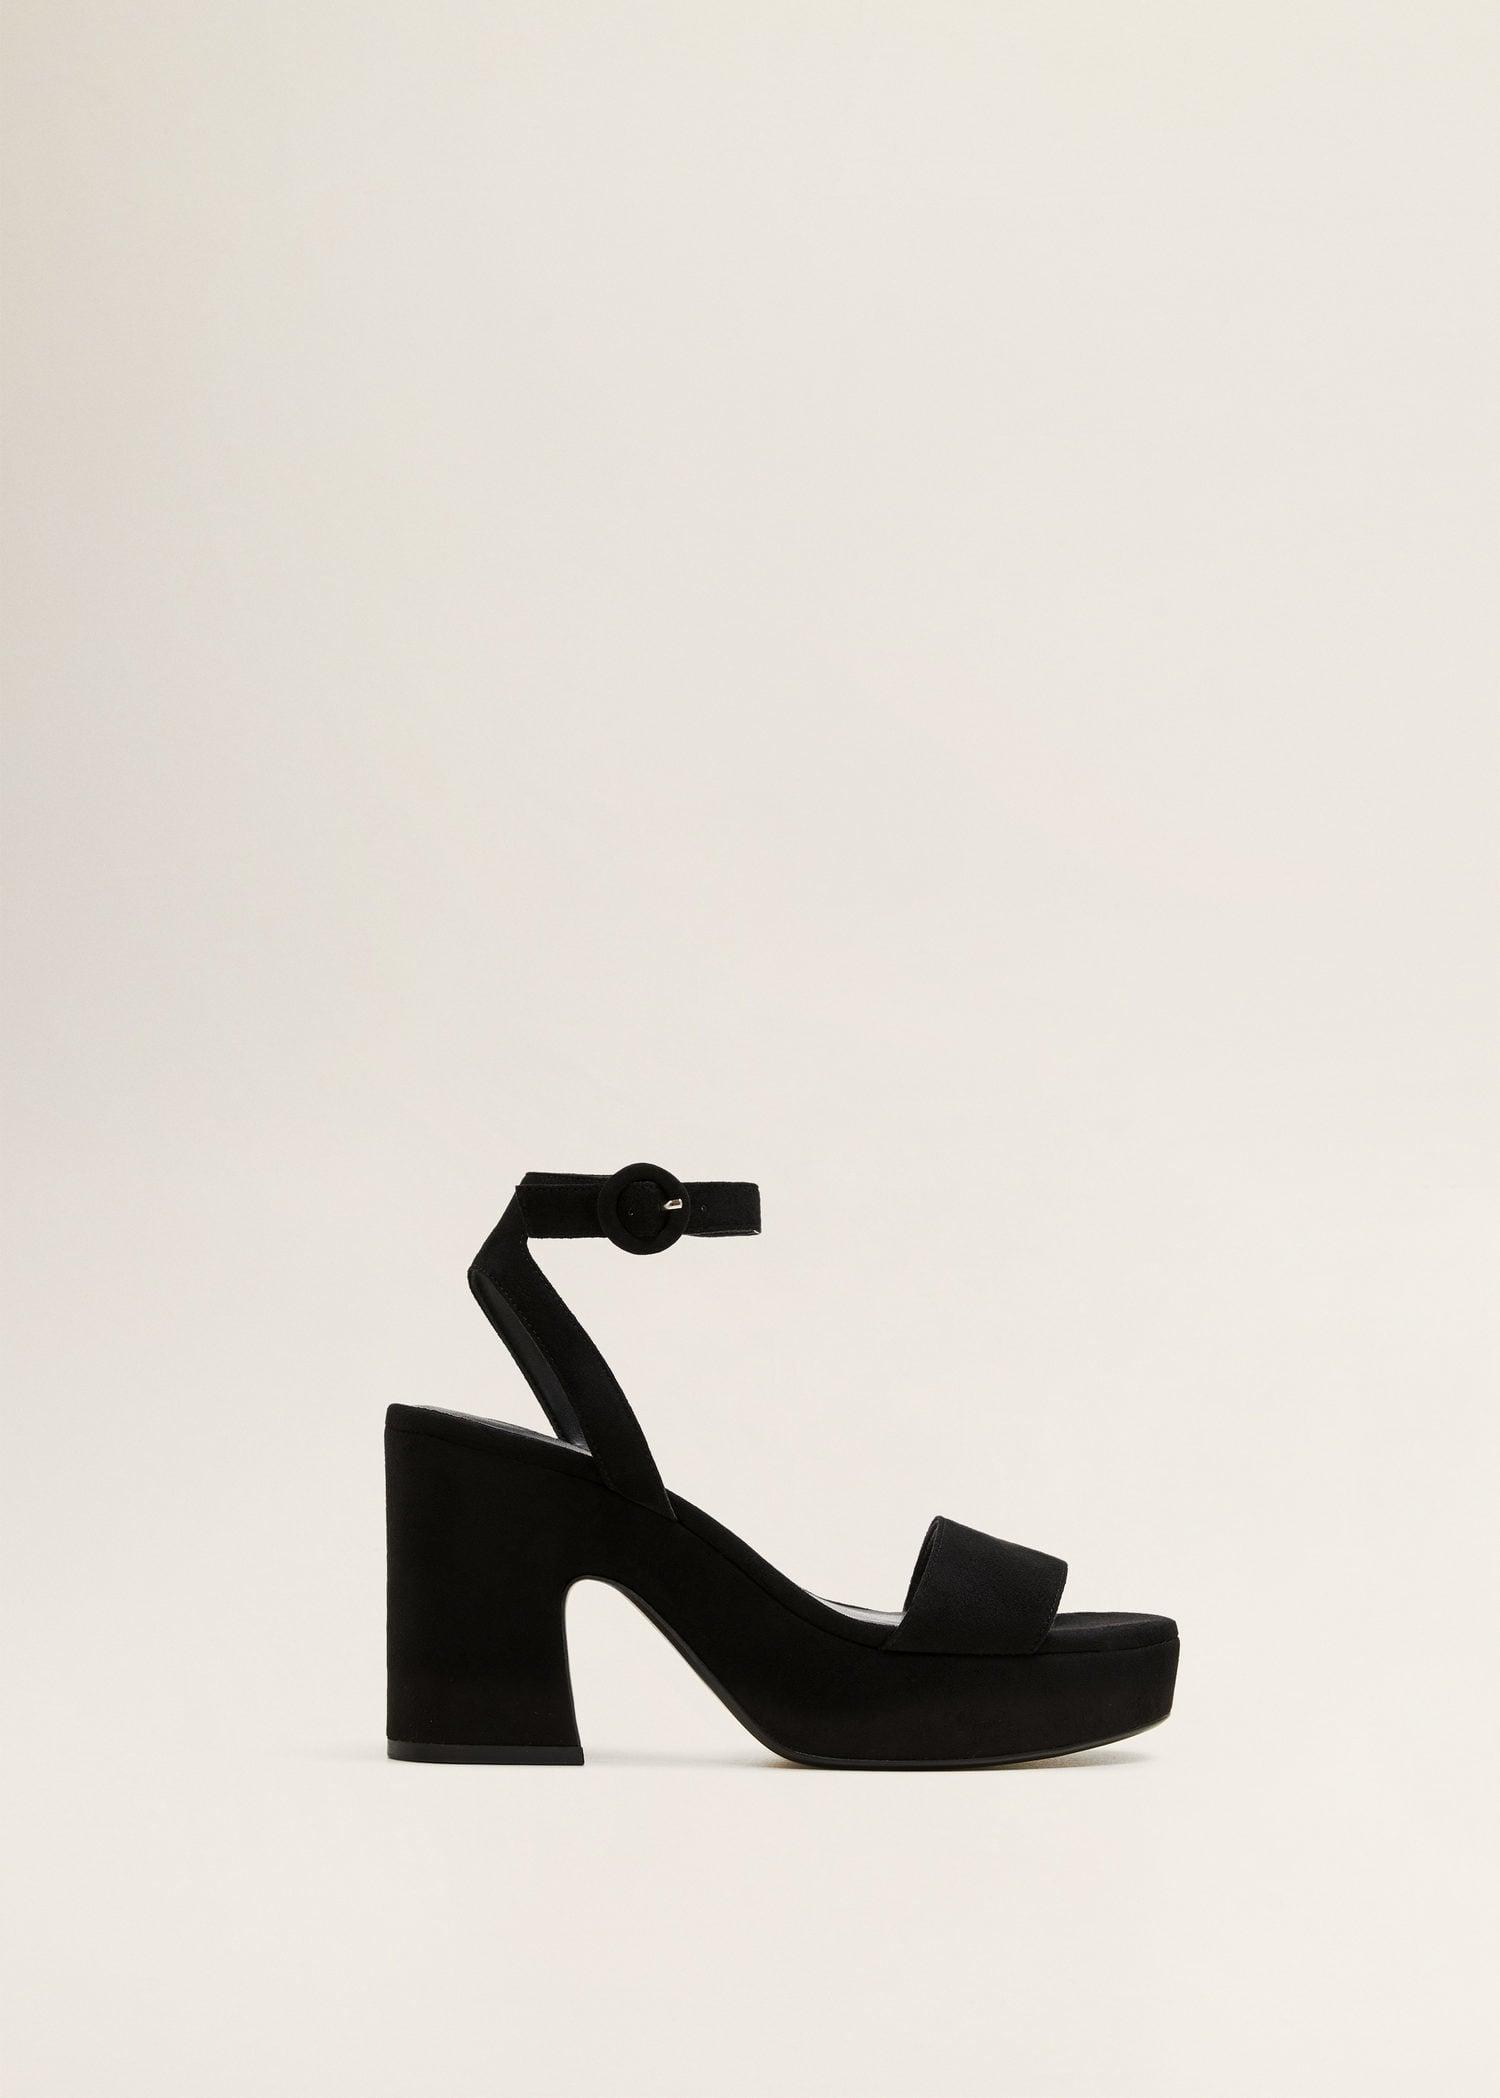 321bc8052181 Lyst - Mango Platfrom Ankle-cuff Sandals in Black